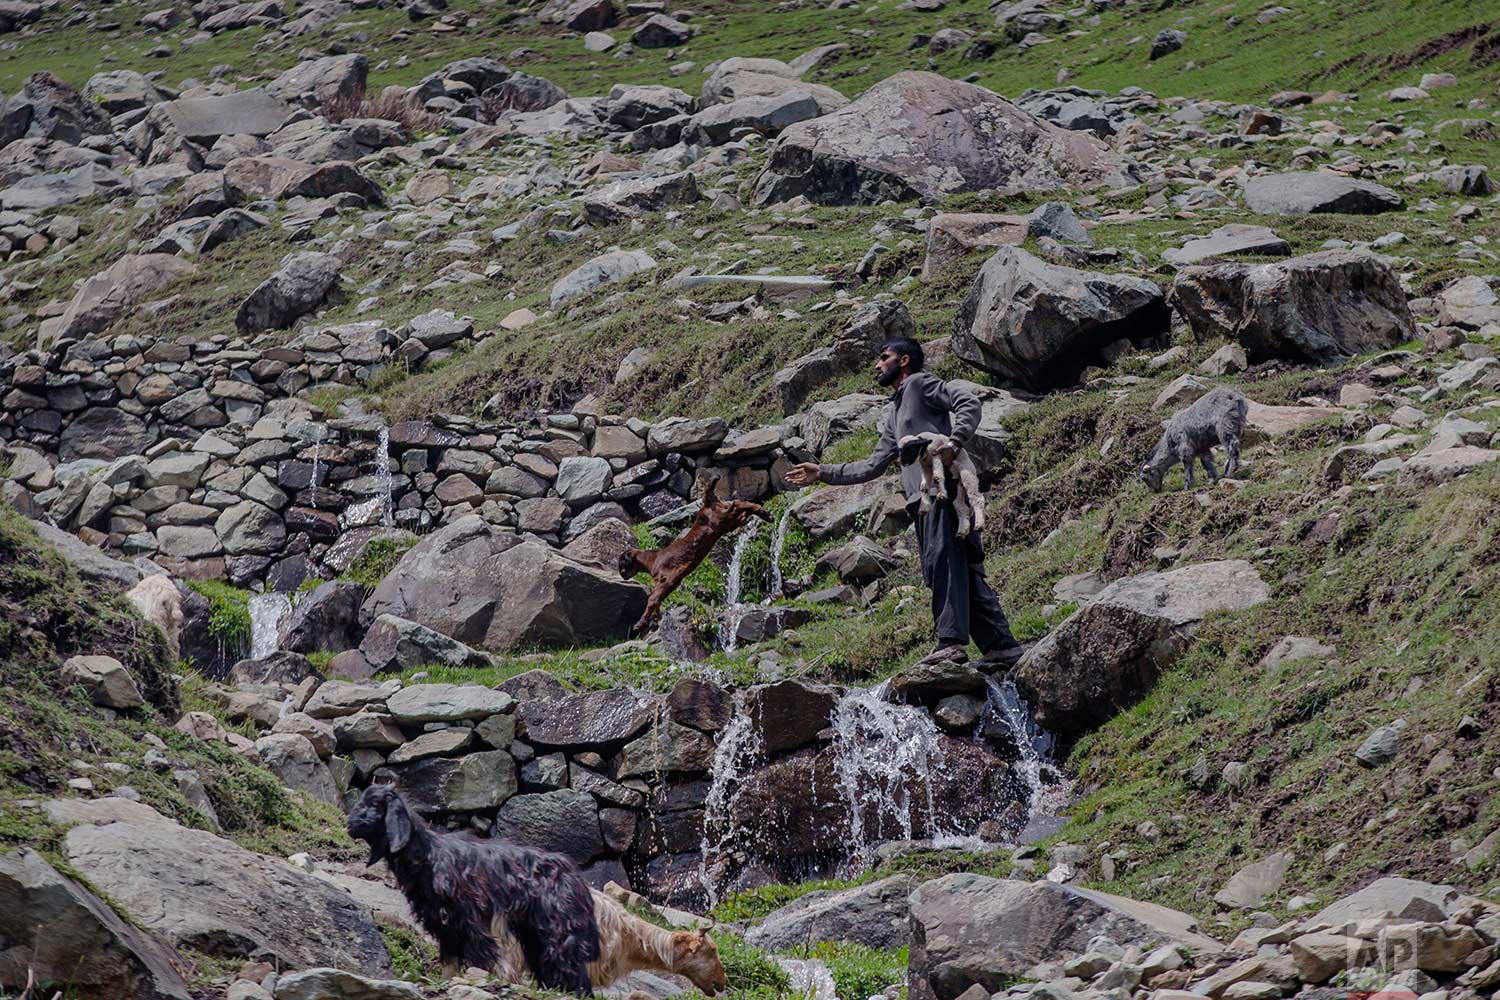 In this May 9, 2018, photo, a Kashmiri nomadic Bakarwal man carries a lamb as he tosses a baby goat to help them cross a waterfall near Dubgan, 70 kilometers (43 miles) south of Srinagar, Indian controlled Kashmir. (AP Photo/Dar Yasin)